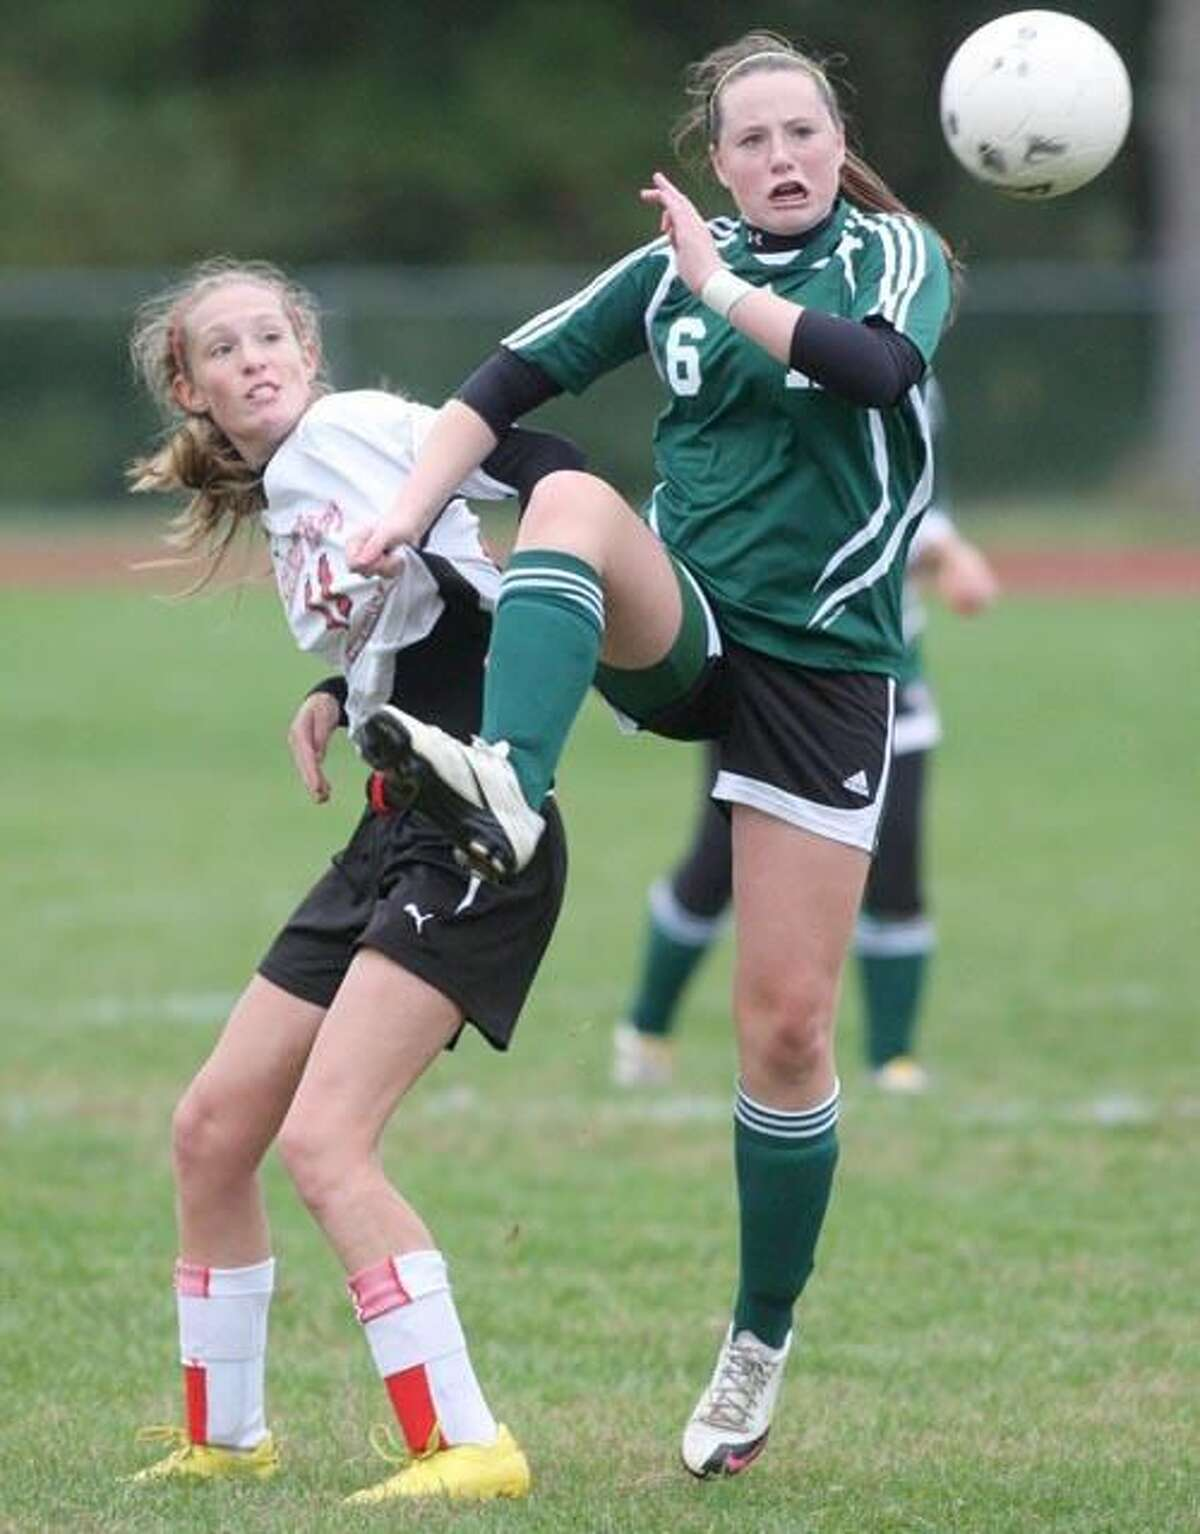 Photo by Russ McCreven Hamden's Emma Gigantino kicks the ball away while battling with Sacred Heart's Libby Carlson in the Green Dragons' 2-0 victory last week.